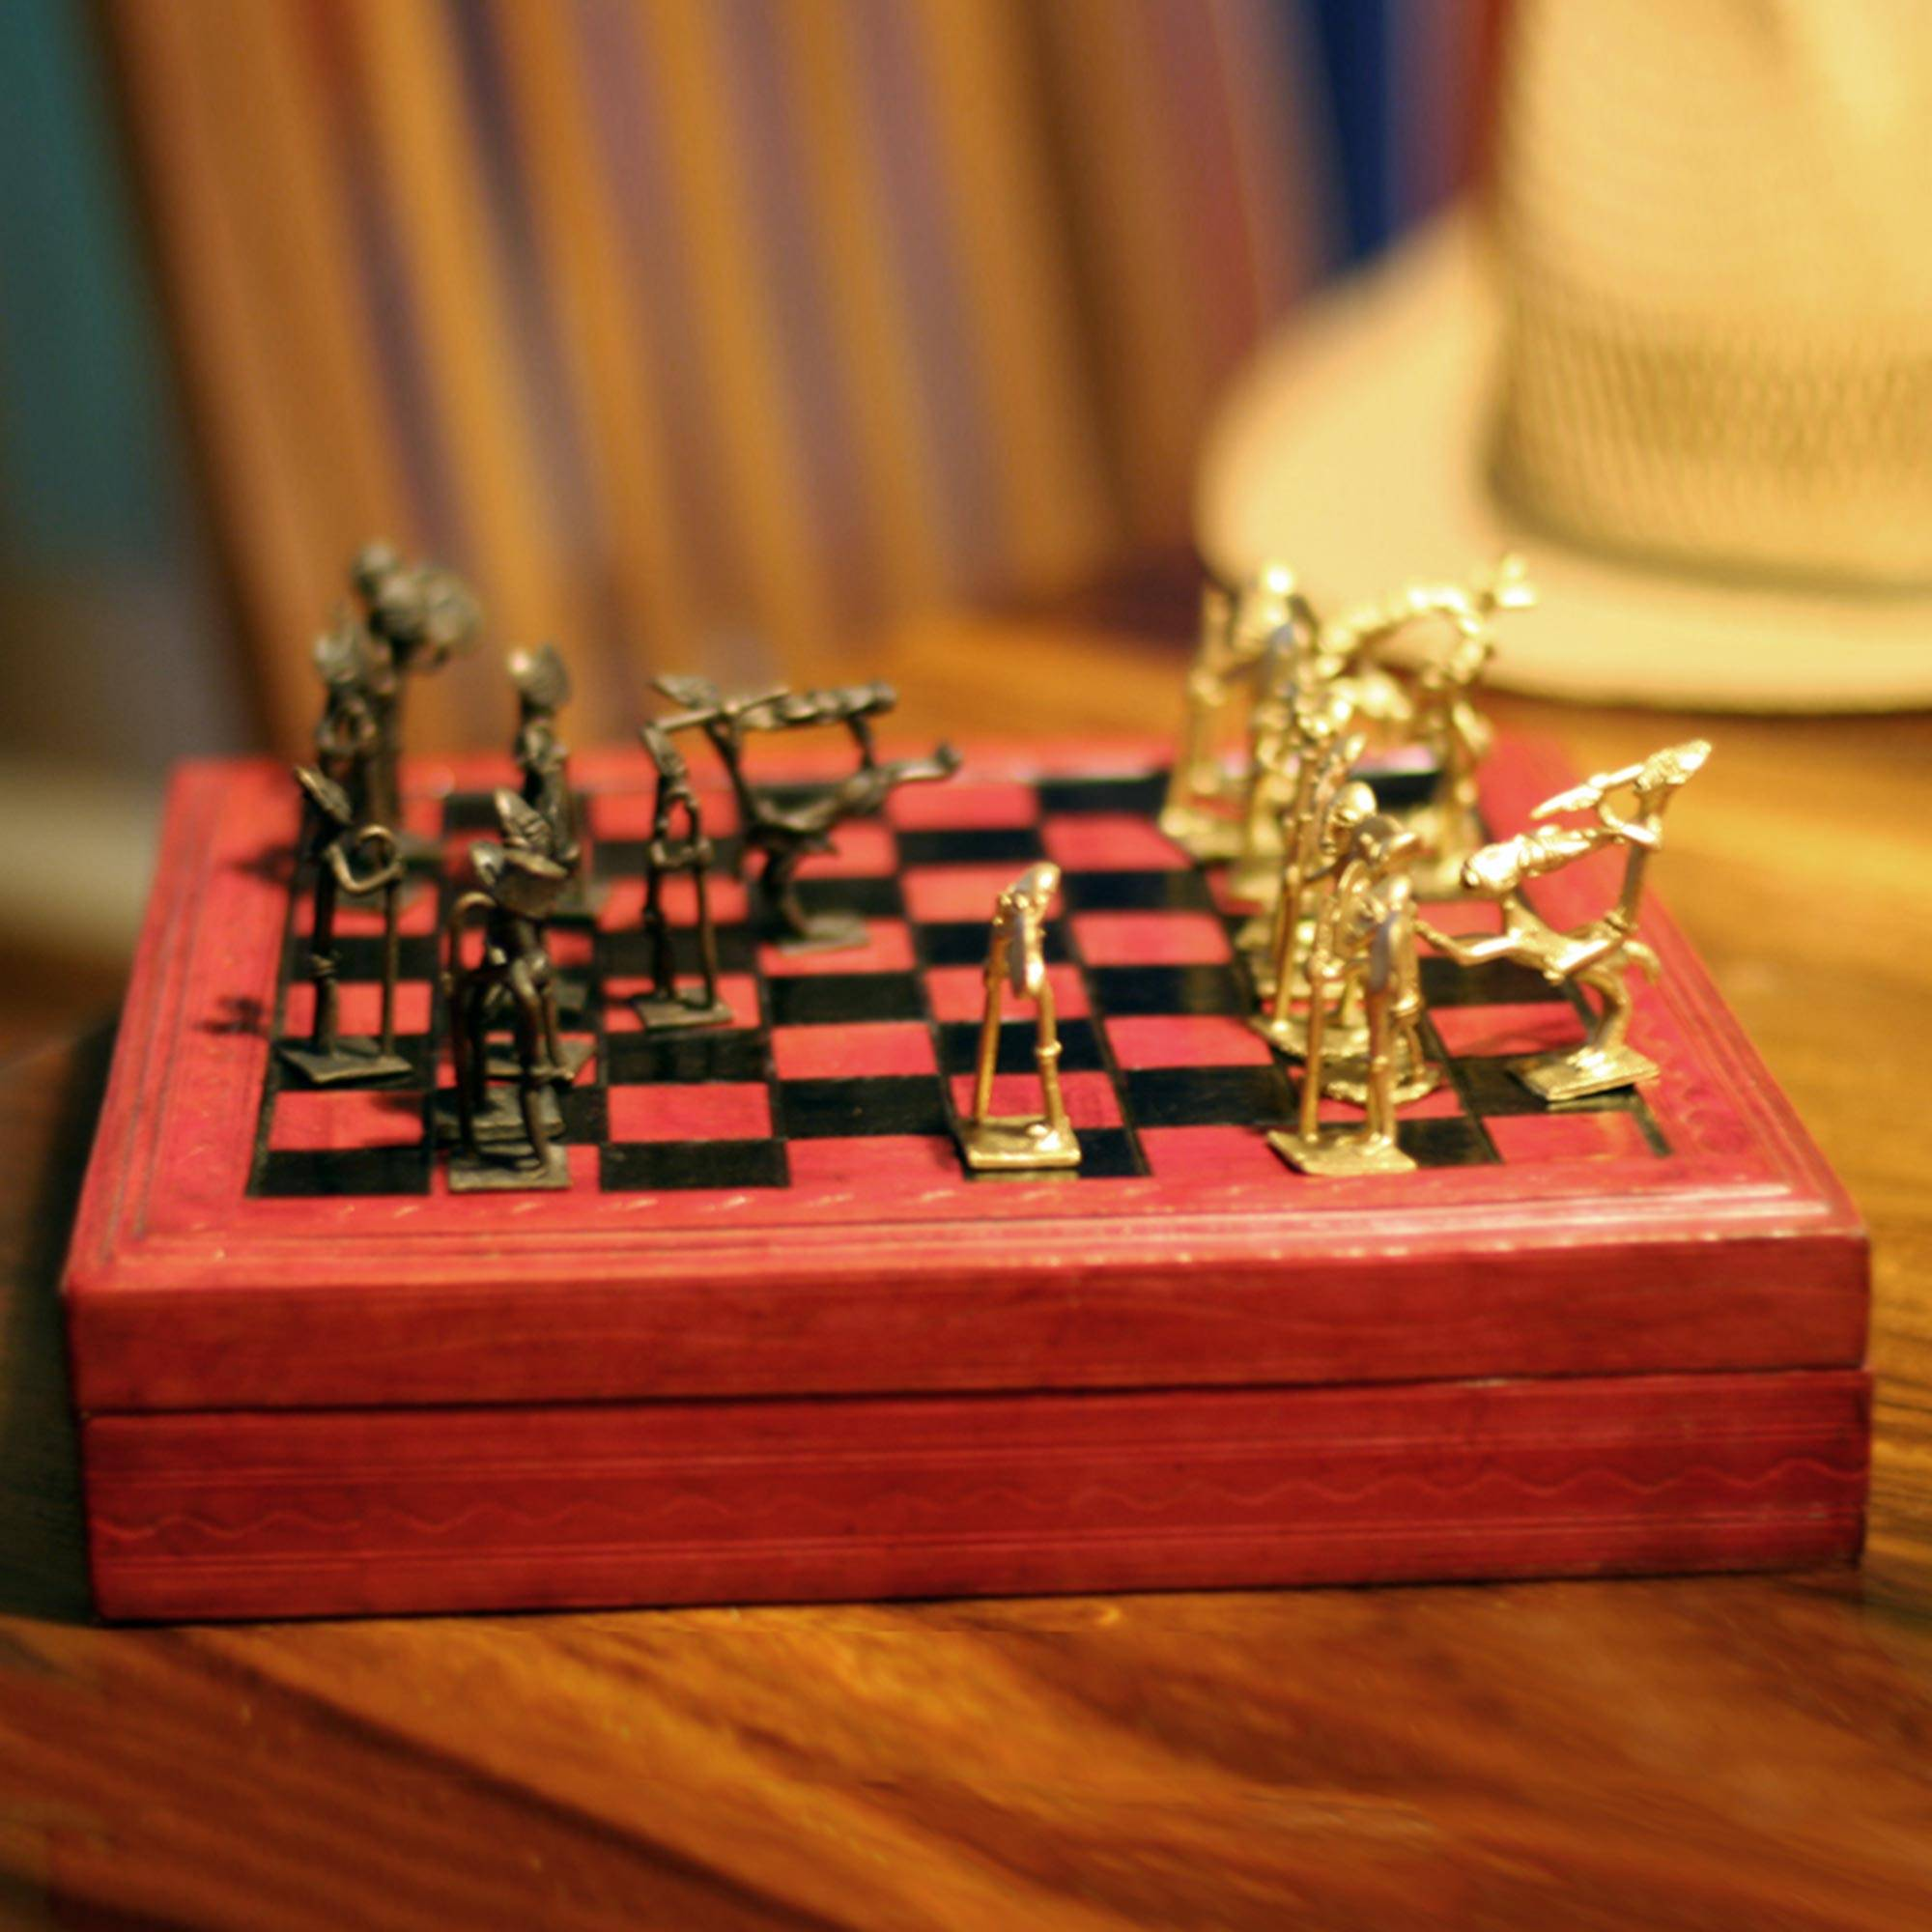 'Tribal Feuds' Handcrafted Wood, Leather and Brass Chess Set made in West Africa